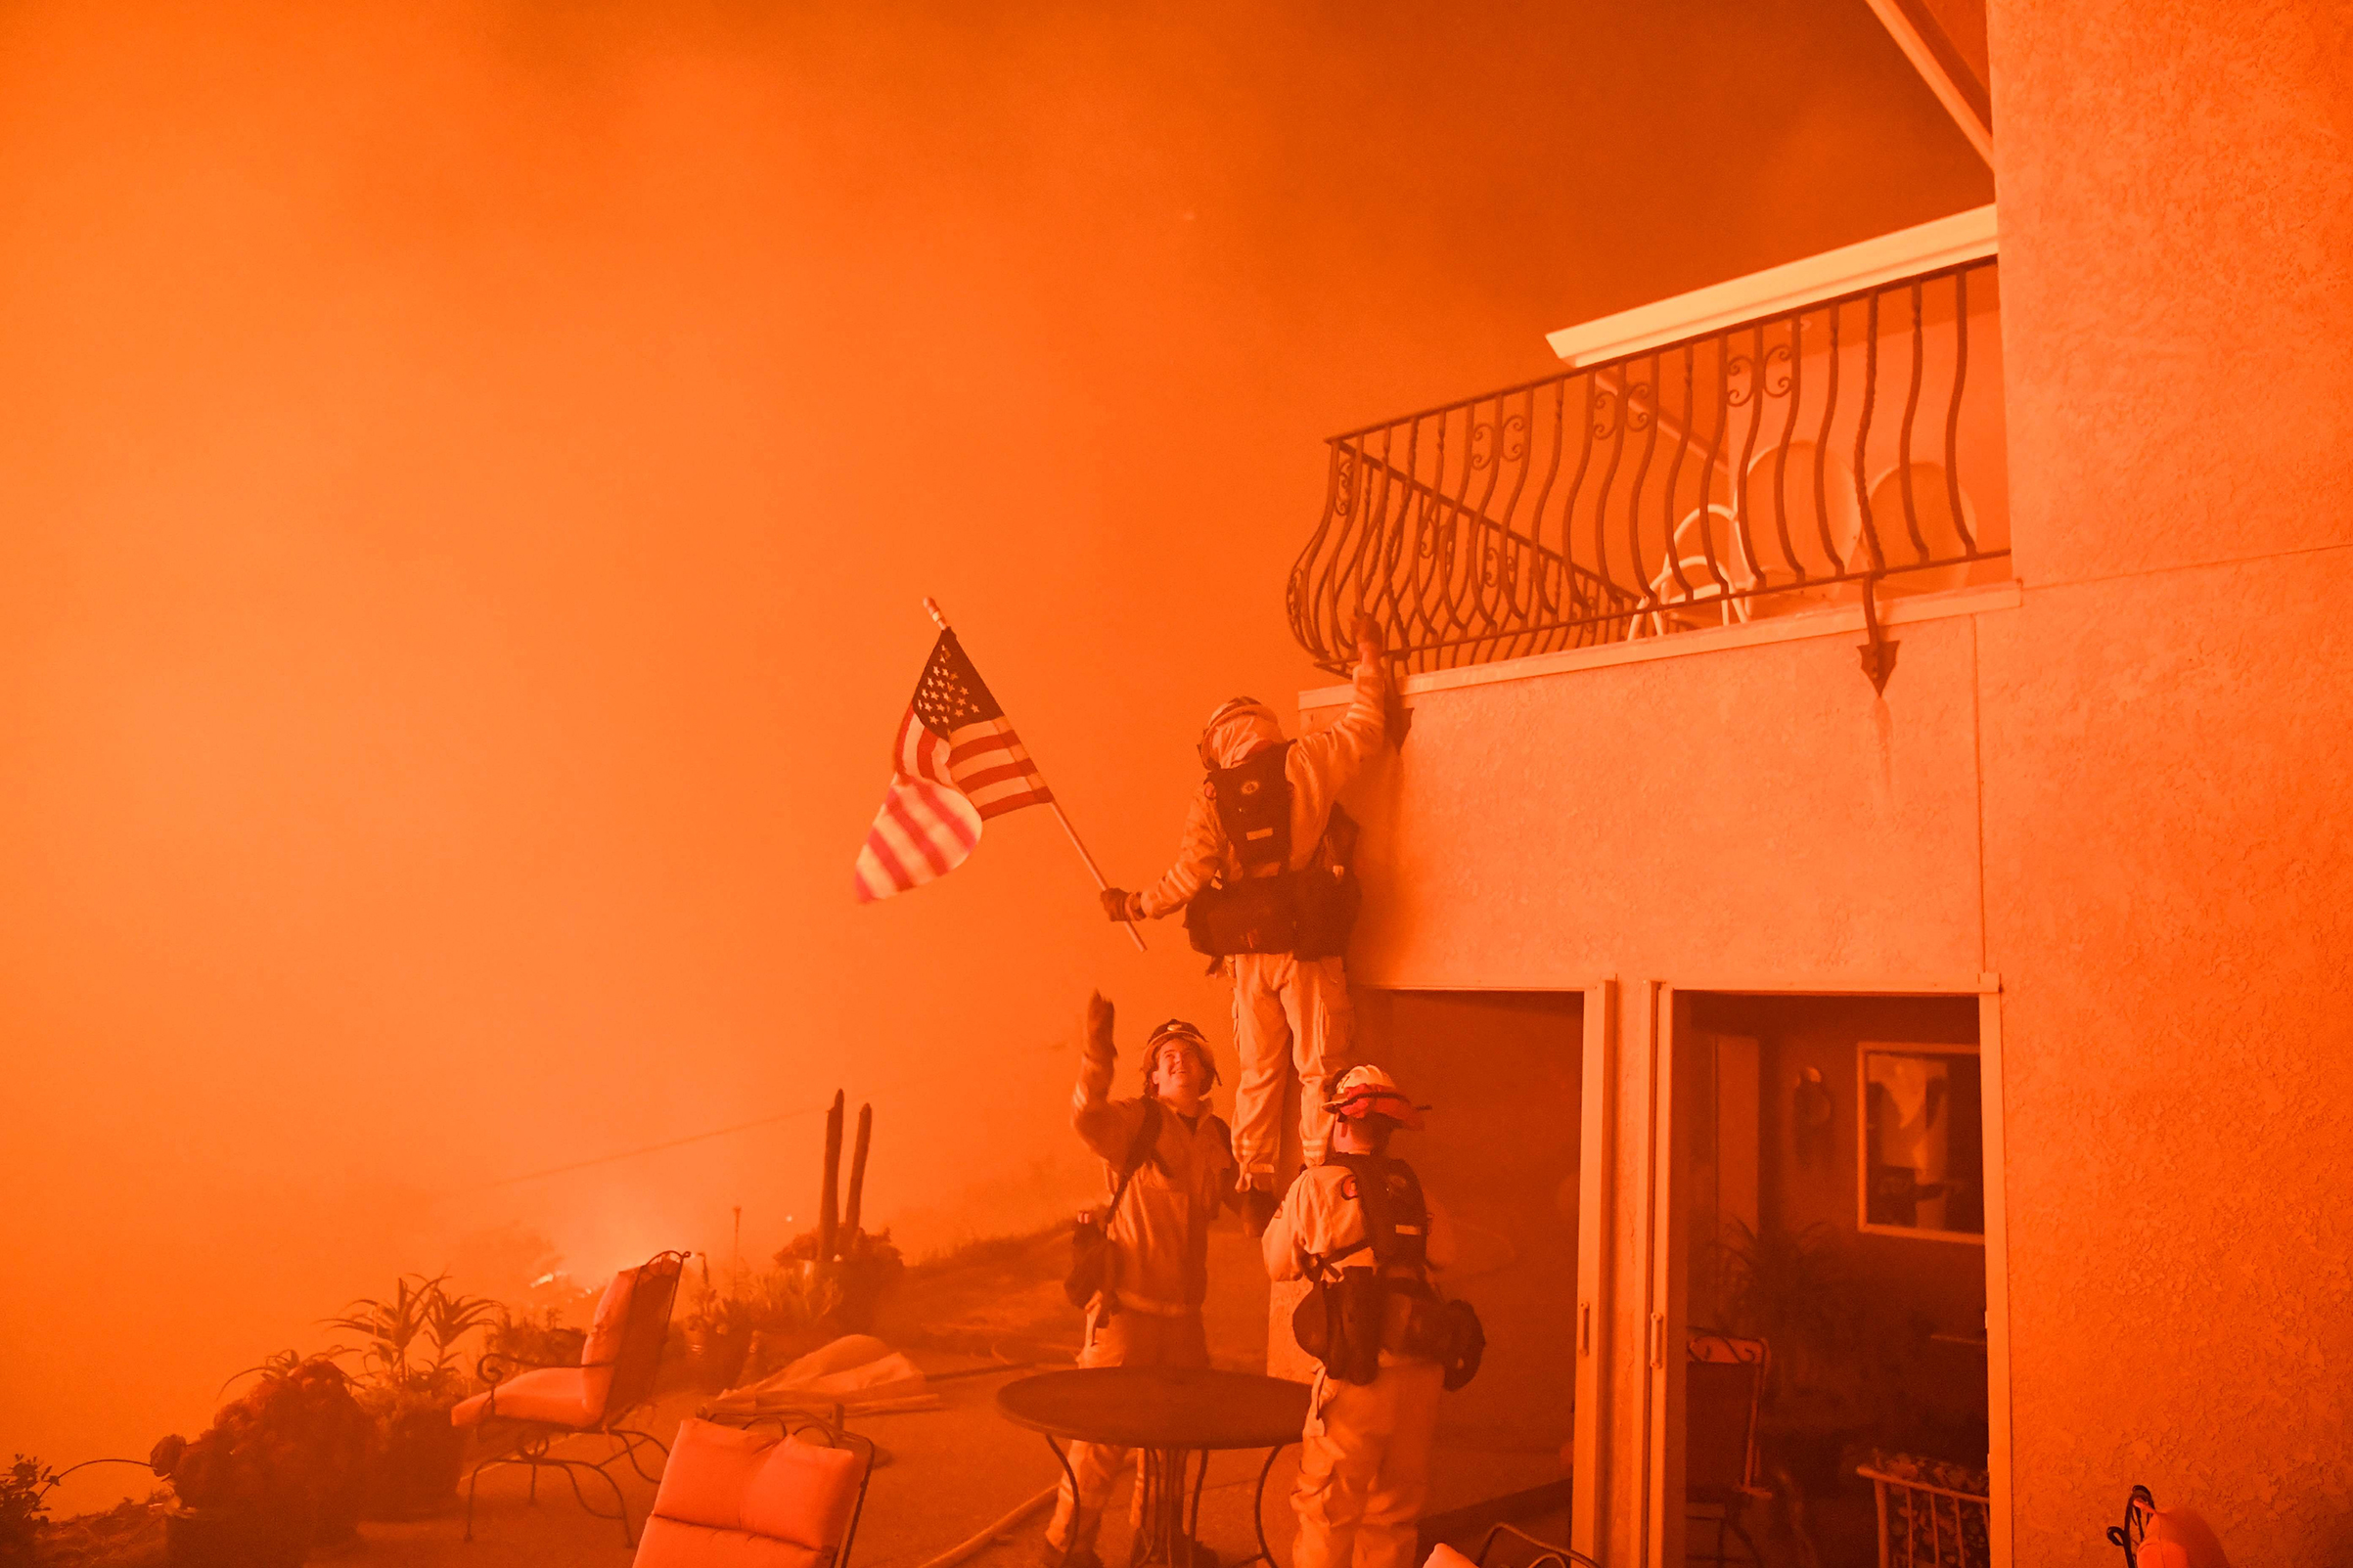 Firefighters save an American flag as impending flames from the Wall Fire close in on a luxury home in Oroville, Calif., on July 8, 2017.